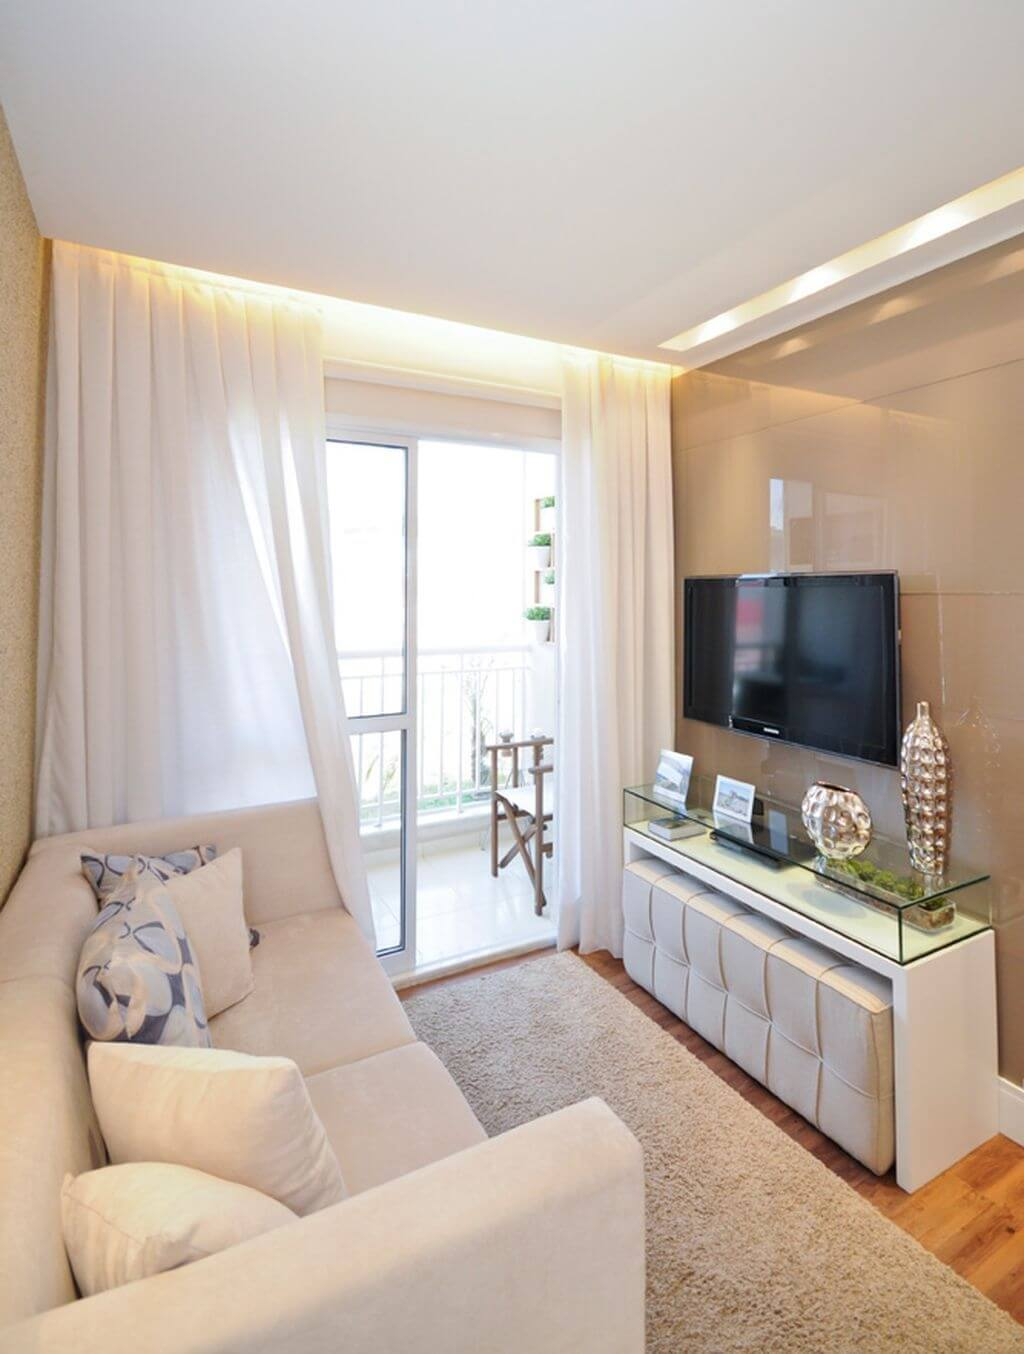 25+ Best Small Living Room Decor and Design Ideas for 2020 on Small Living Room Decorating Ideas  id=71405